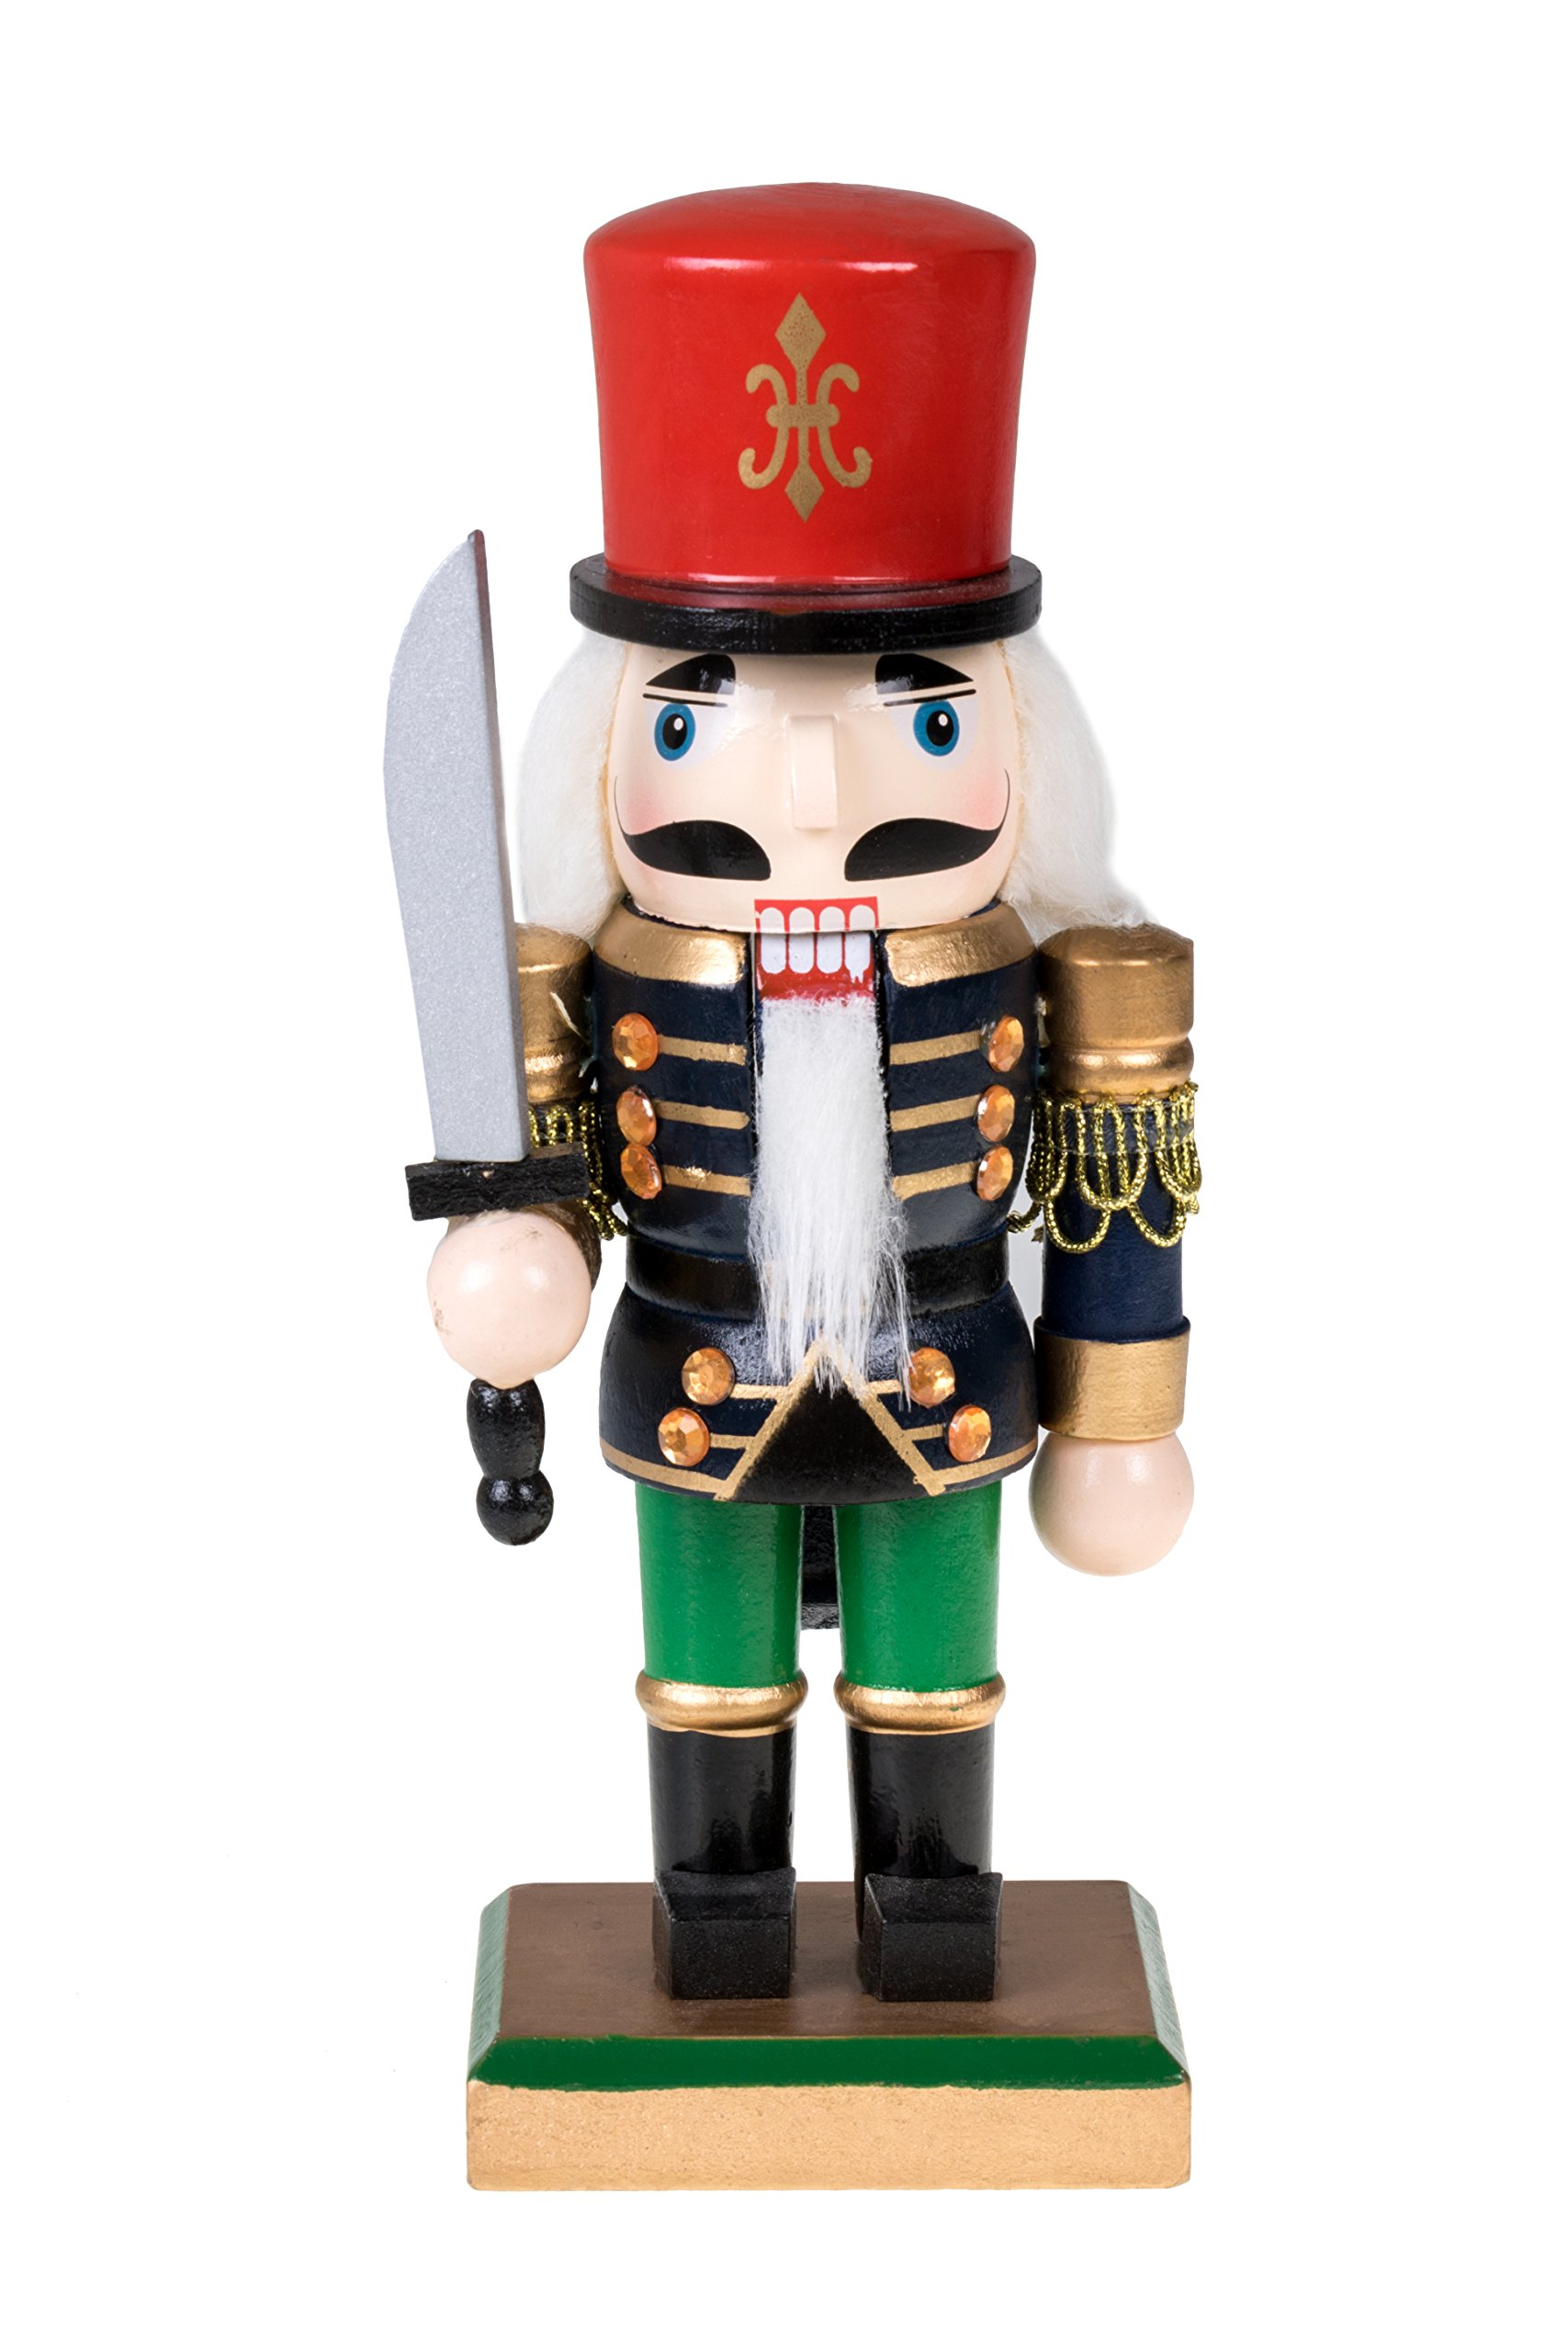 Traditional Soldier Chubby Nutcracker with Sword and Red Hat by Clever Creations | Festive Christmas Decor | 8'' Tall Perfect for Shelves and Tables | Collectible Wooden Nutcracker